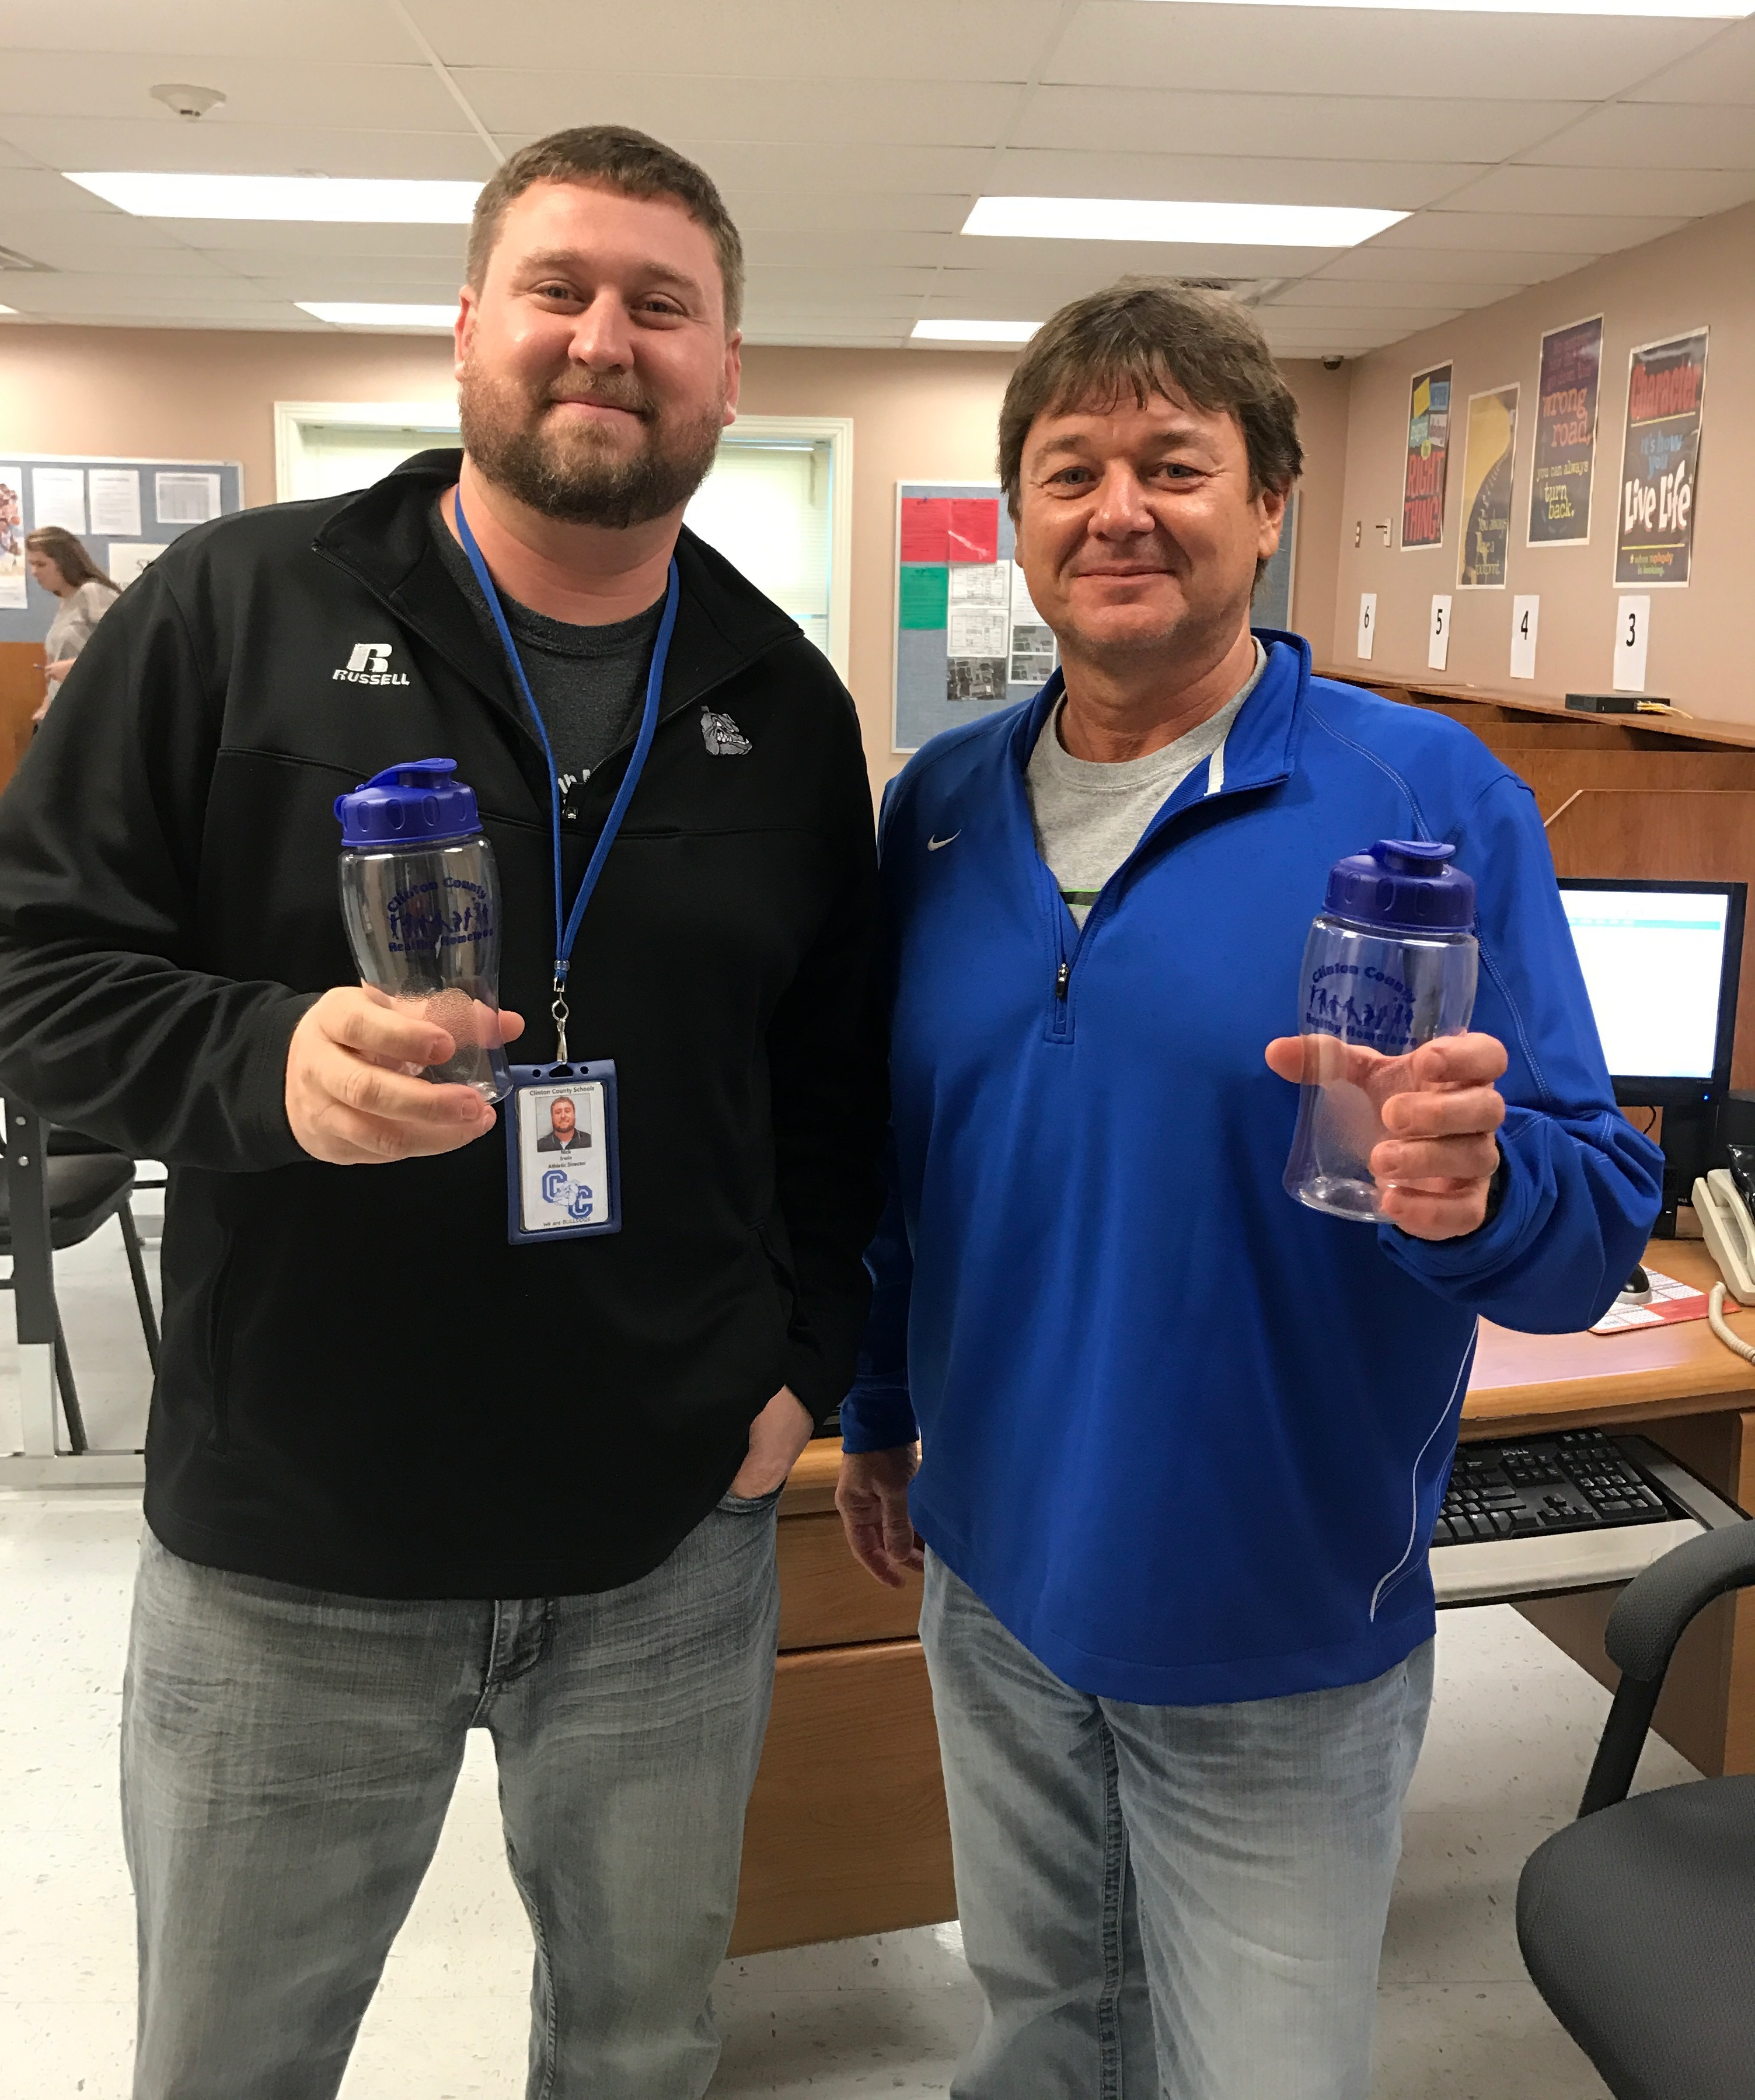 Clinton County Healthy Hometown recently awarded prizes to the faculty and staff Be Active Club members at ECC, AES, CCMS, and CCHS for the second 9-weeks.